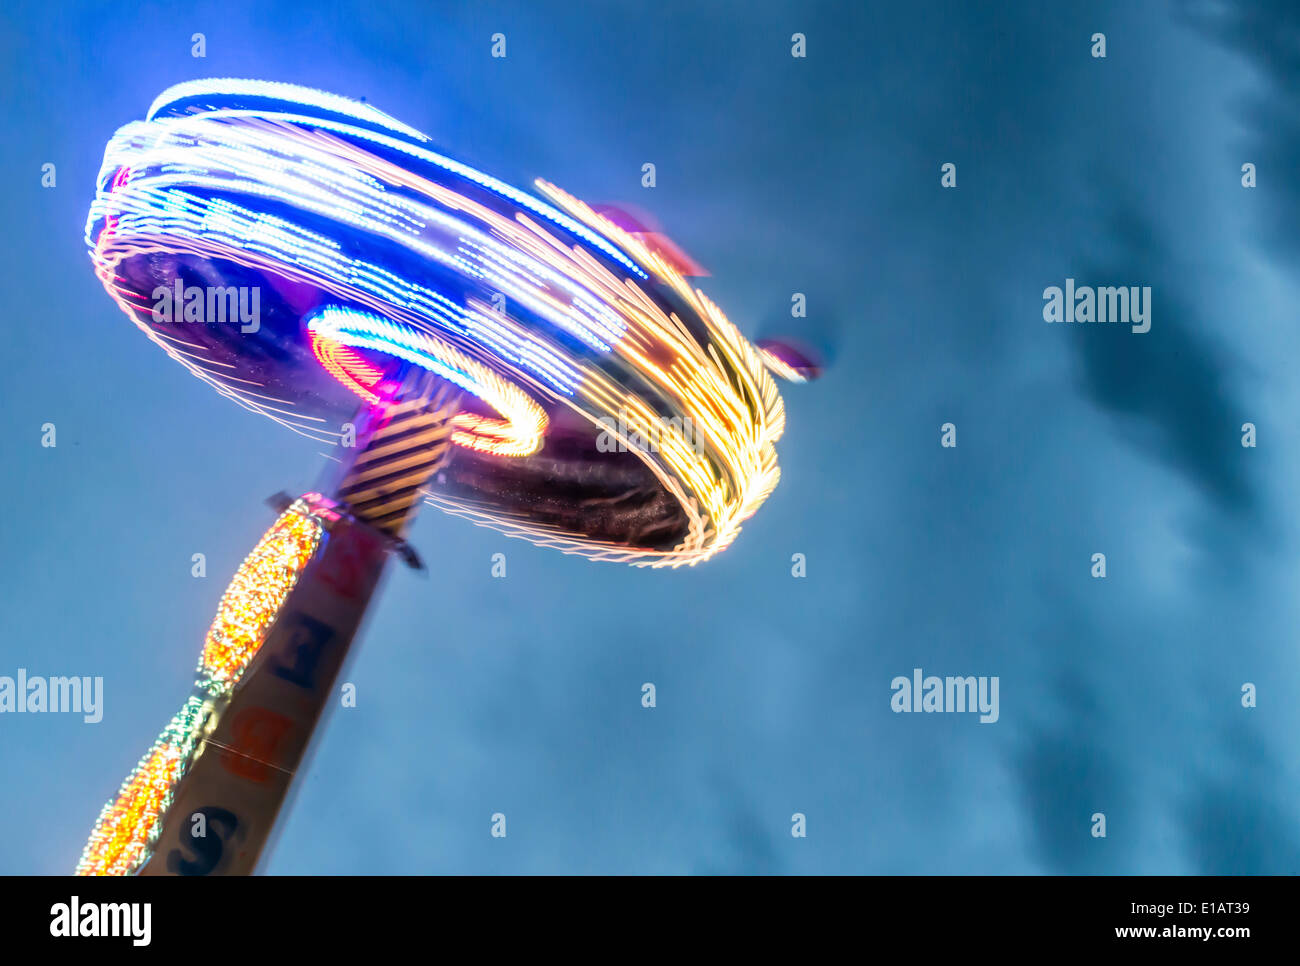 Ride at night, light trails, Munich Spring Festival, Theresienwiese, Munich, Bavaria, Germany - Stock Image